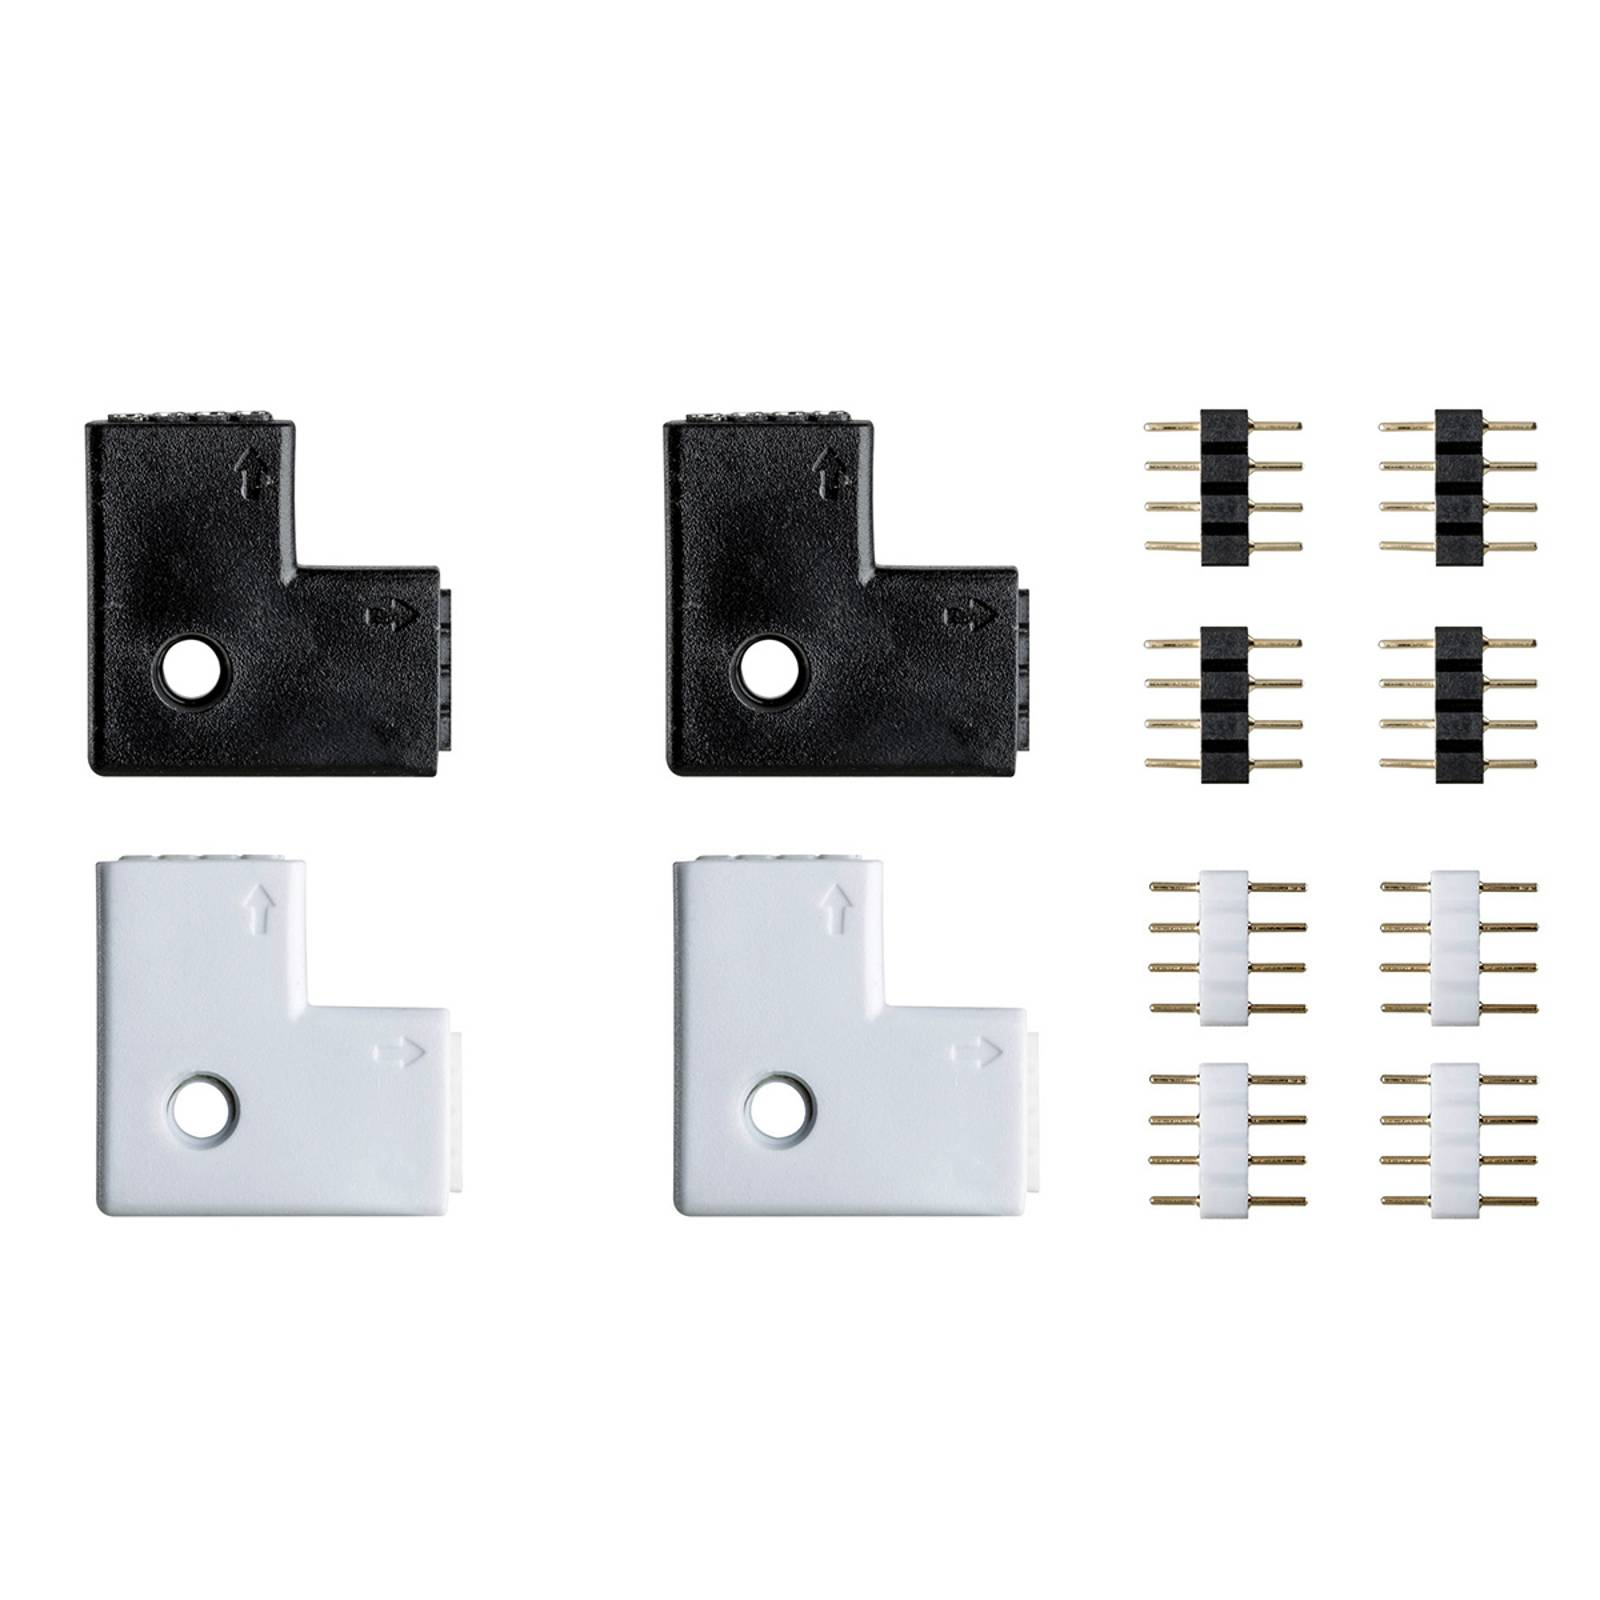 Set of 4 corner connectors for Caja strip system from Paulmann